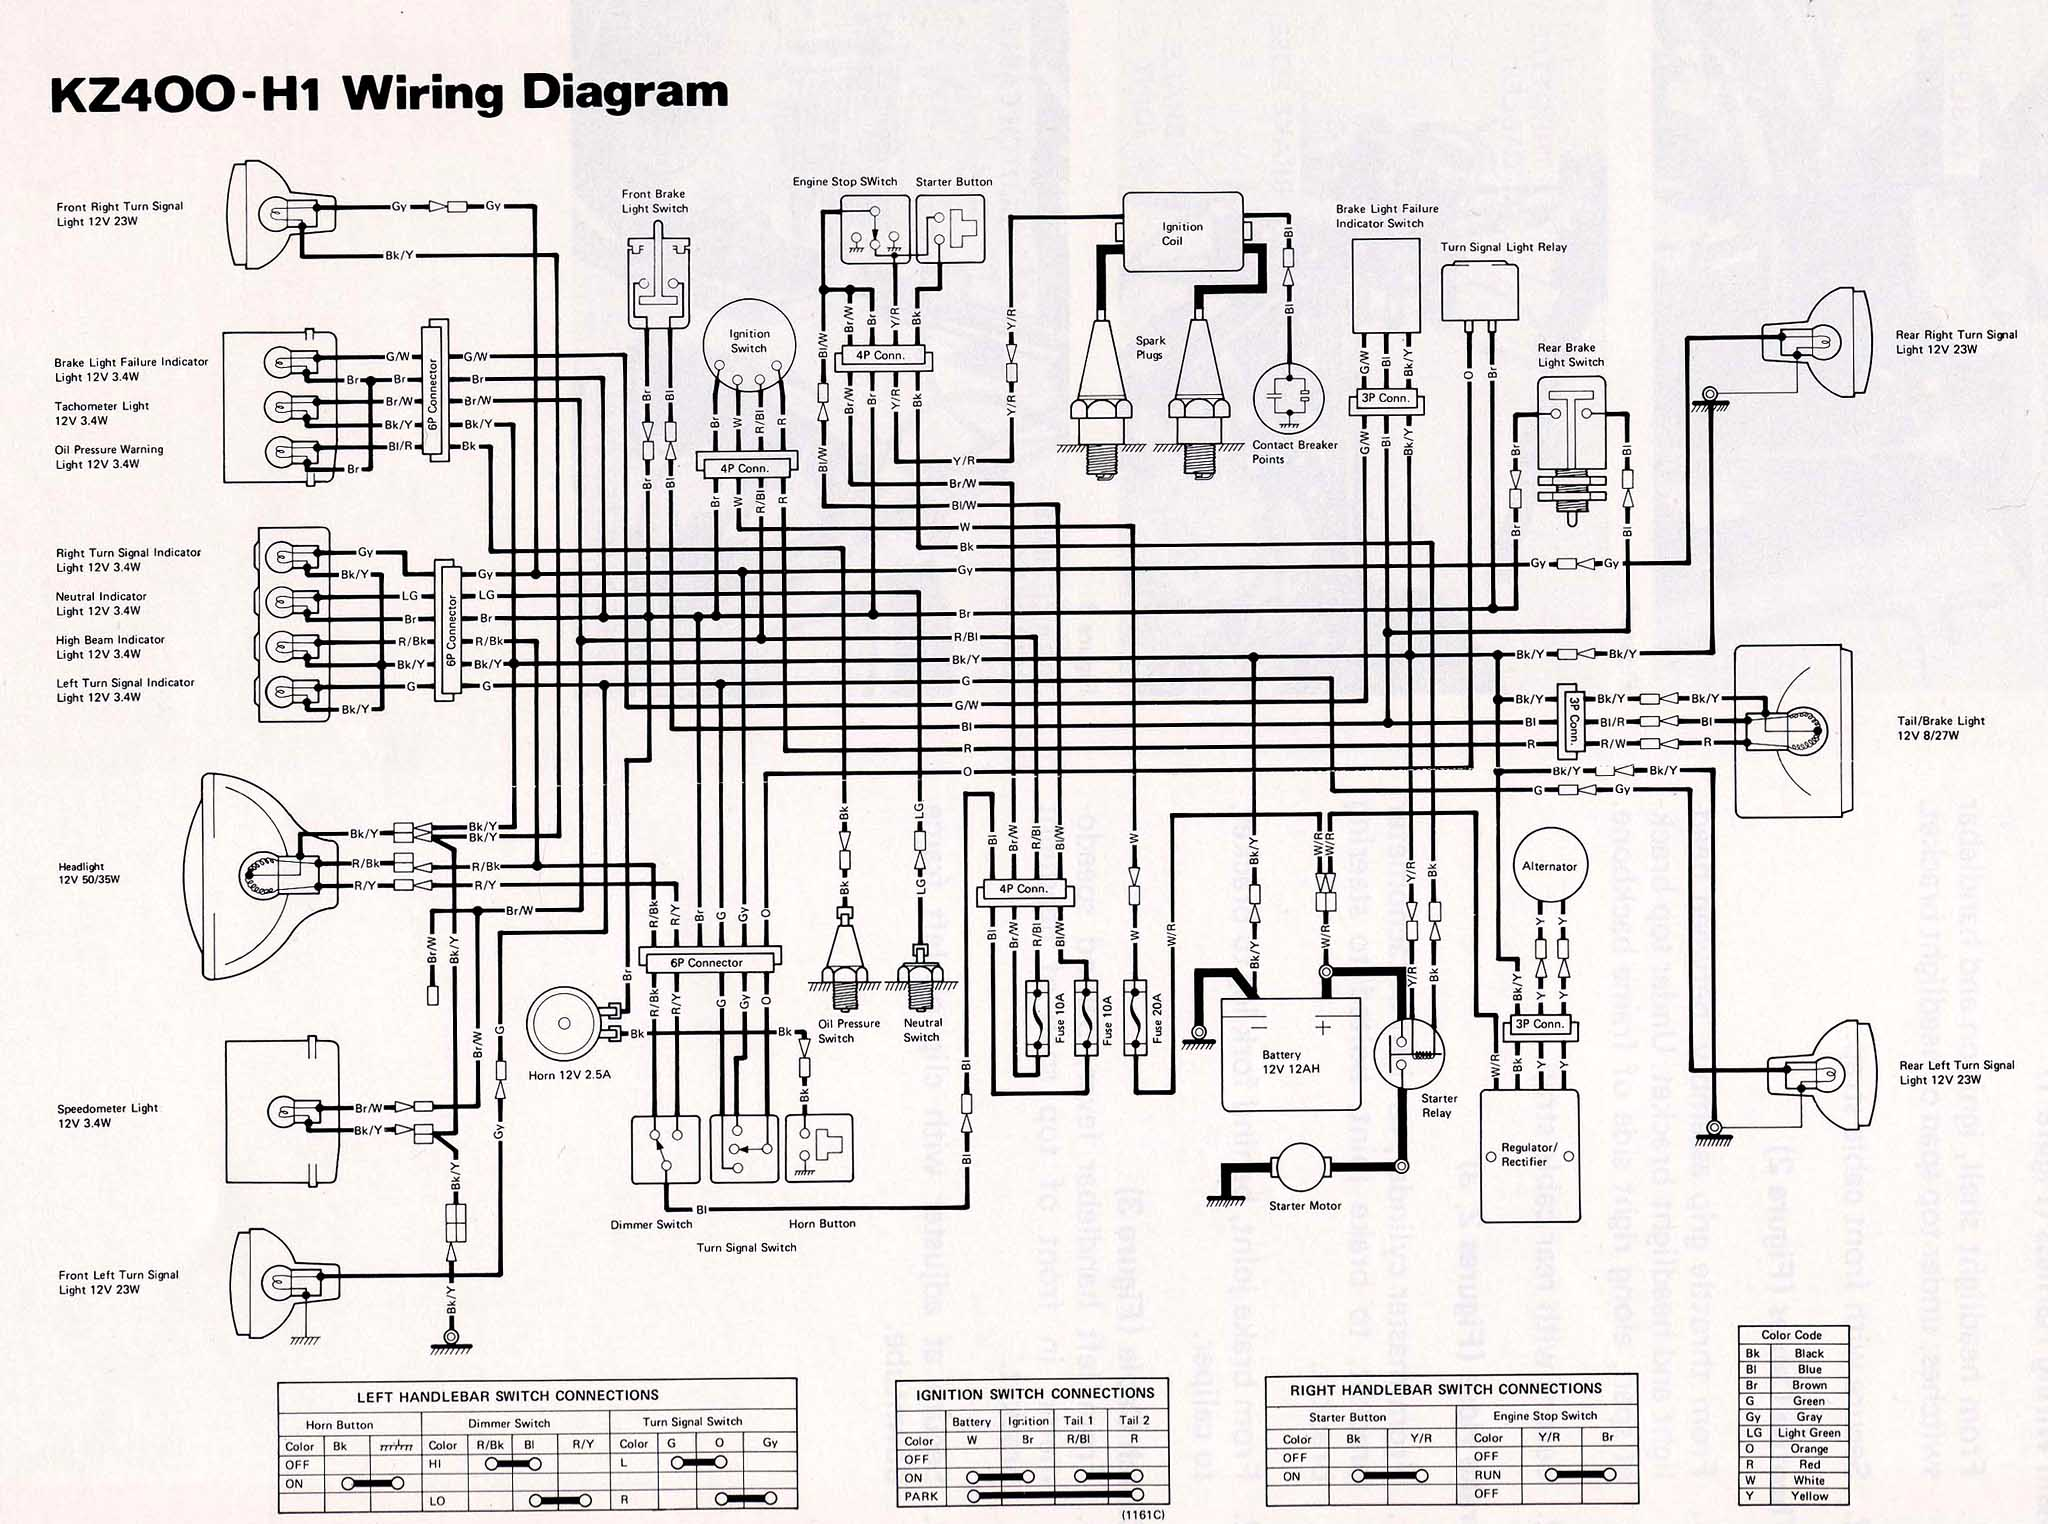 Rotation of KZ400 H1 LTD 22 index of techh tips bilder wiring diagrams 1980 kawasaki 440 ltd wiring diagram at bakdesigns.co